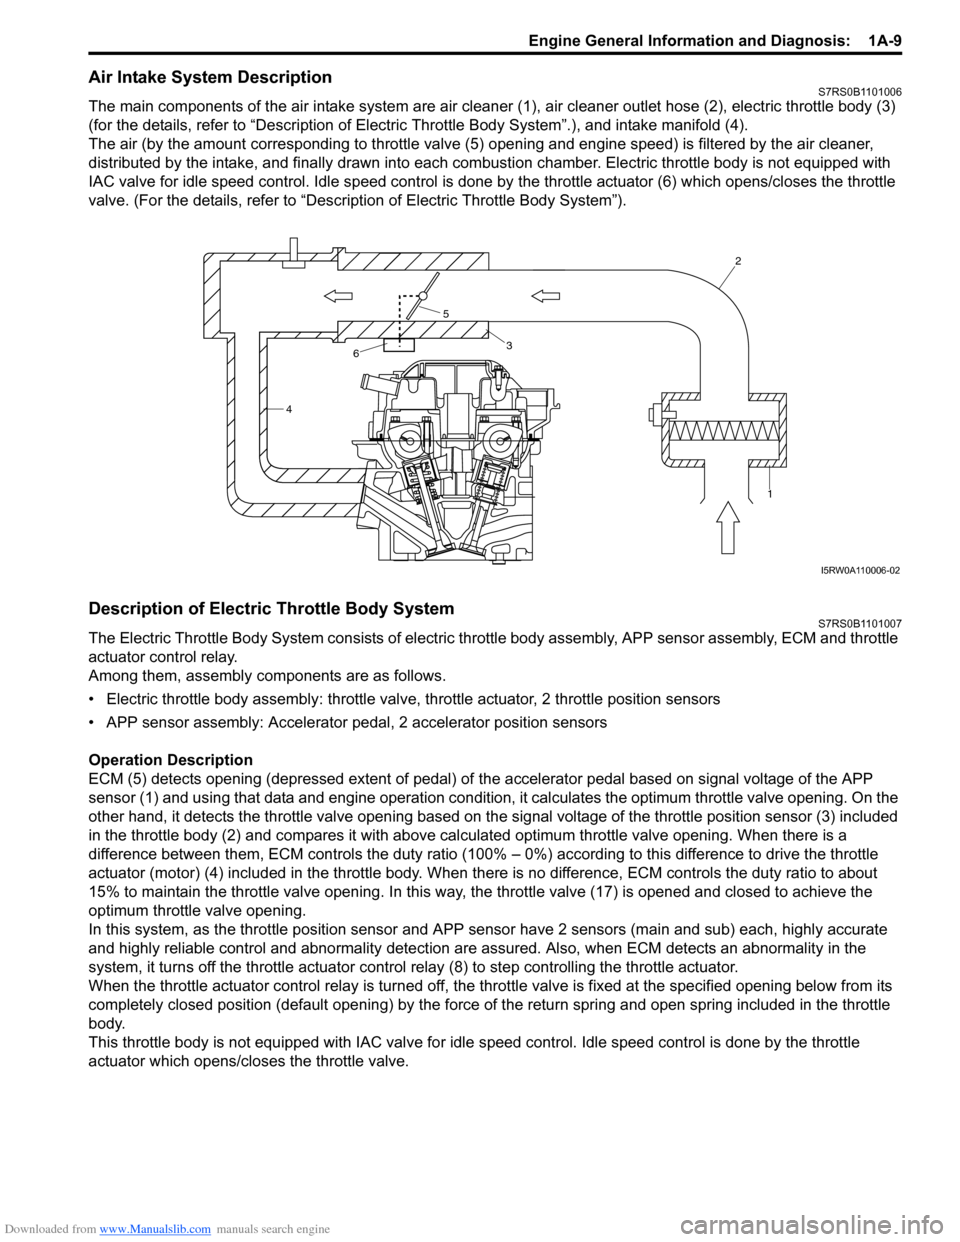 SUZUKI SWIFT 2007 2.G Service Workshop Manual Downloaded from www.Manualslib.com manuals search engine Engine General Information and Diagnosis:  1A-9 Air Intake System DescriptionS7RS0B1101006 The main components of the air intake system are air